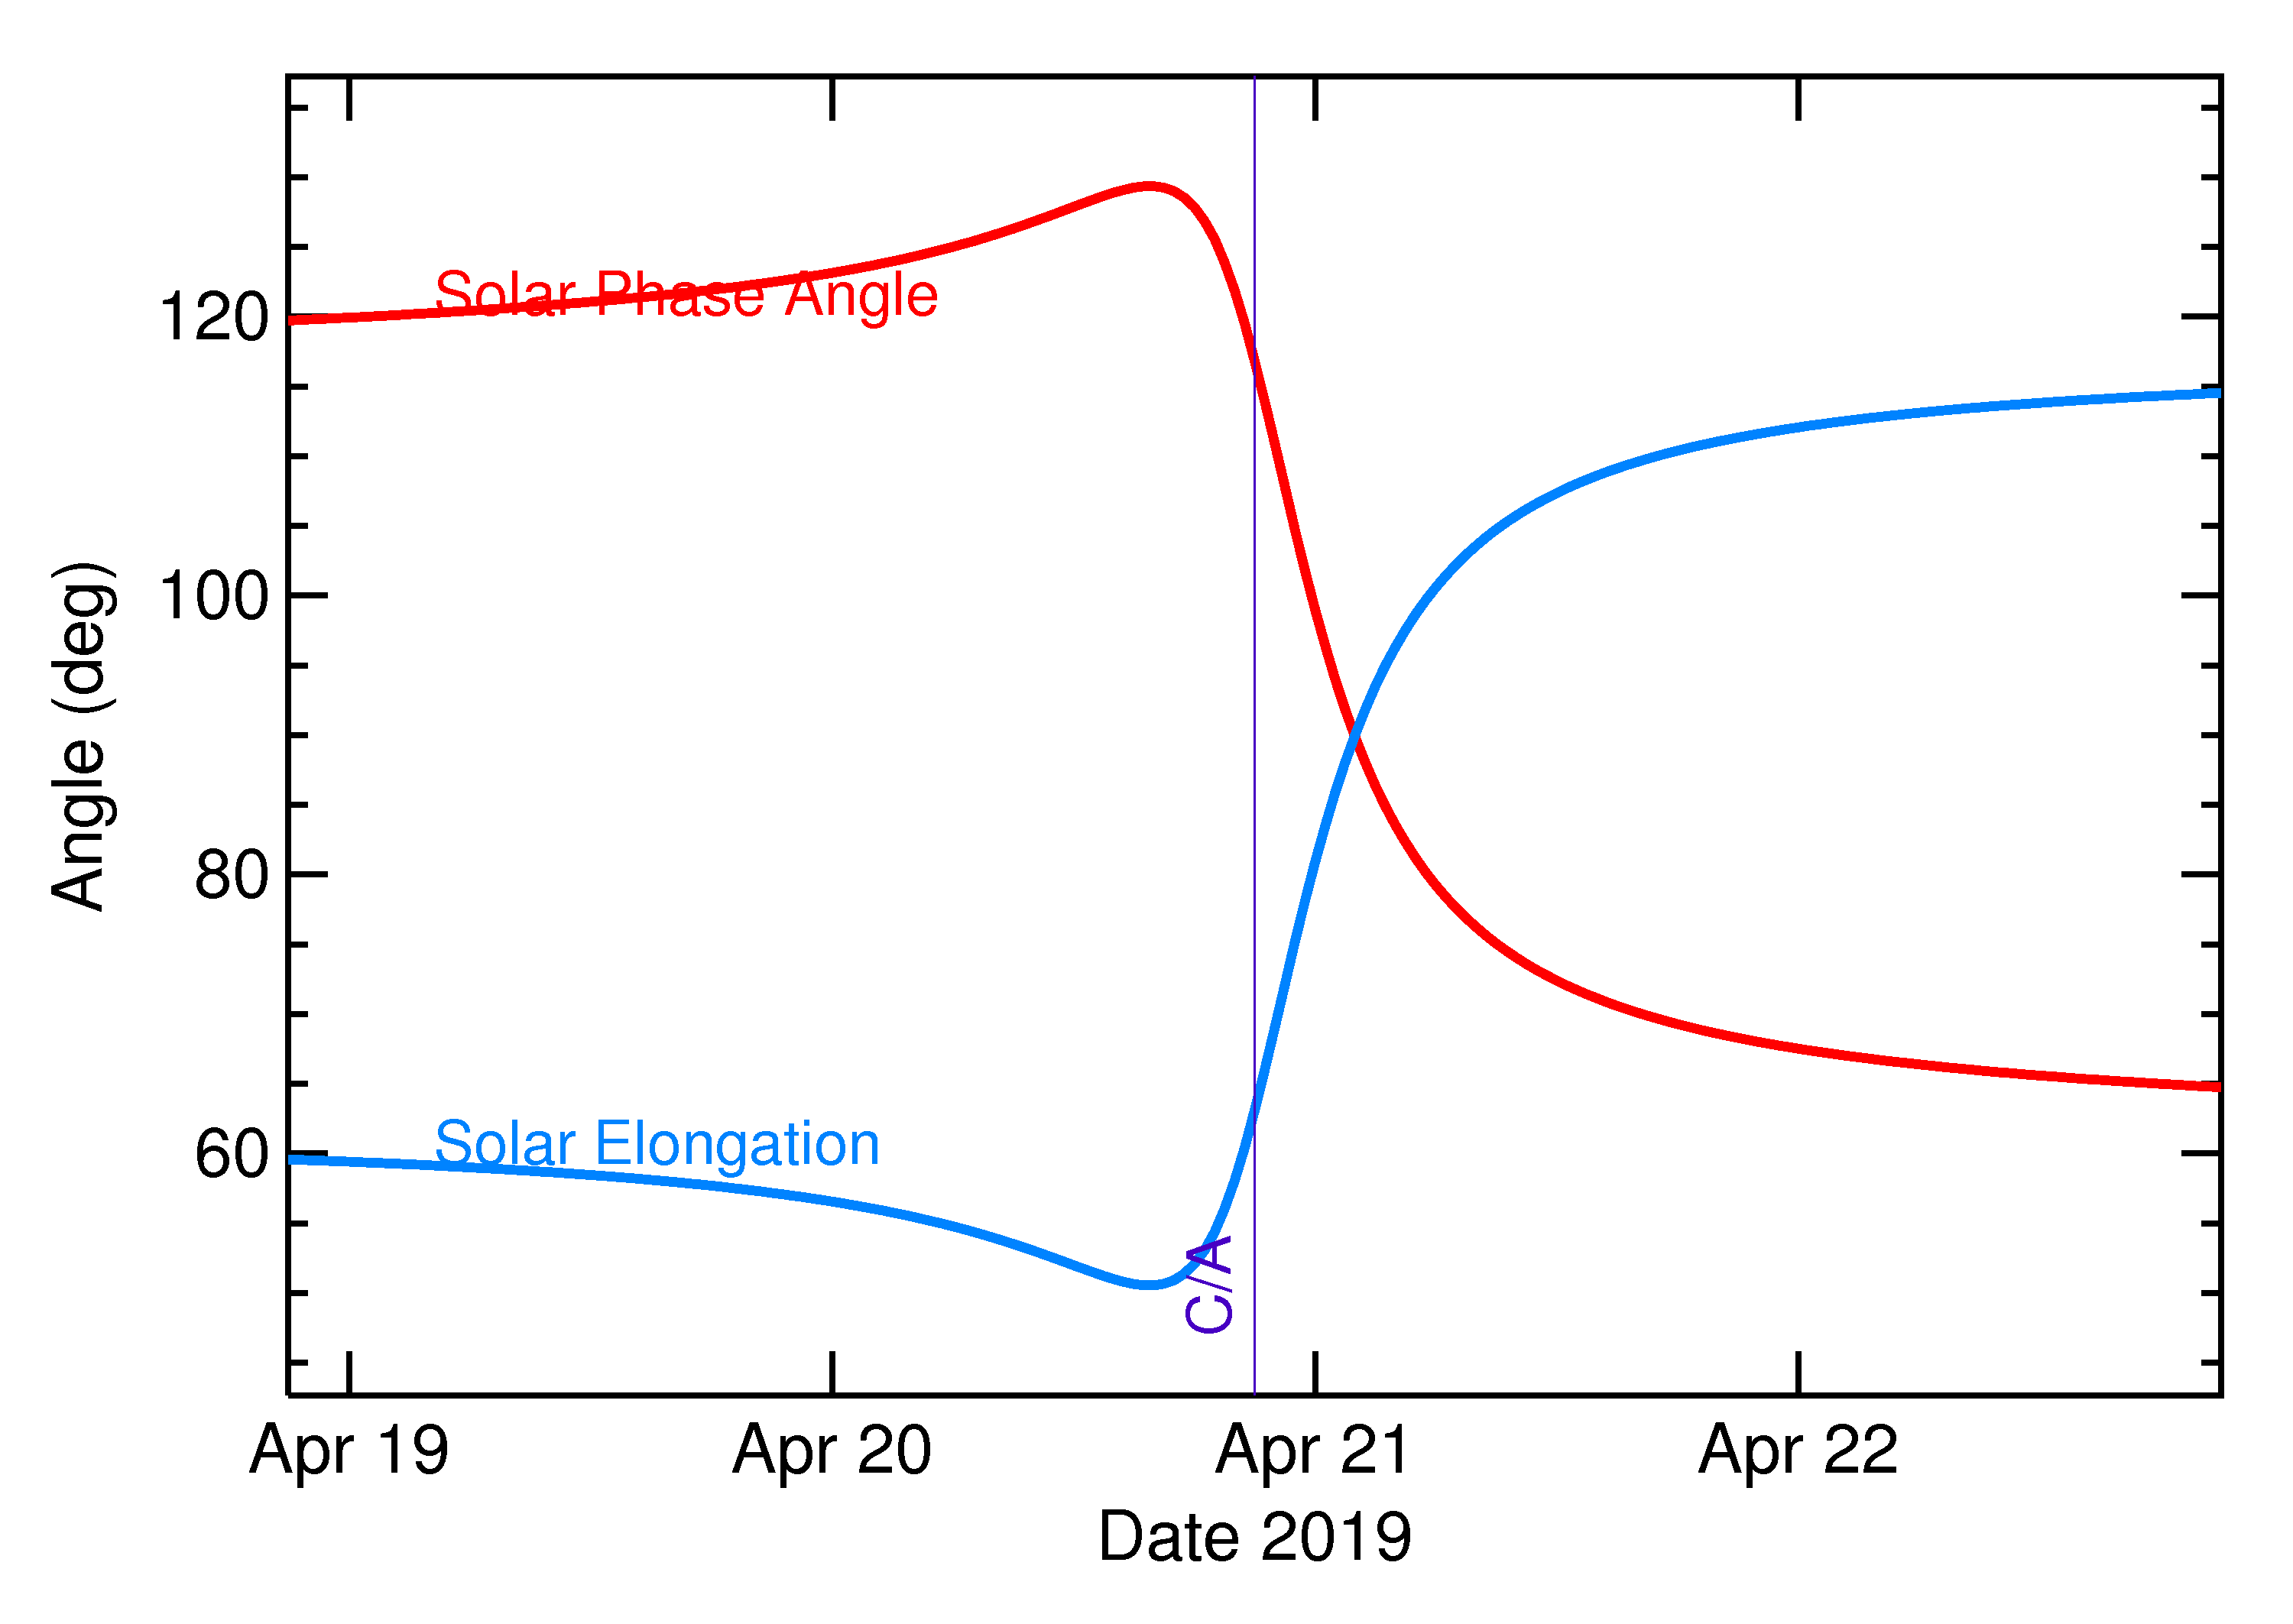 Solar Elongation and Solar Phase Angle of 2019 HE in the days around closest approach